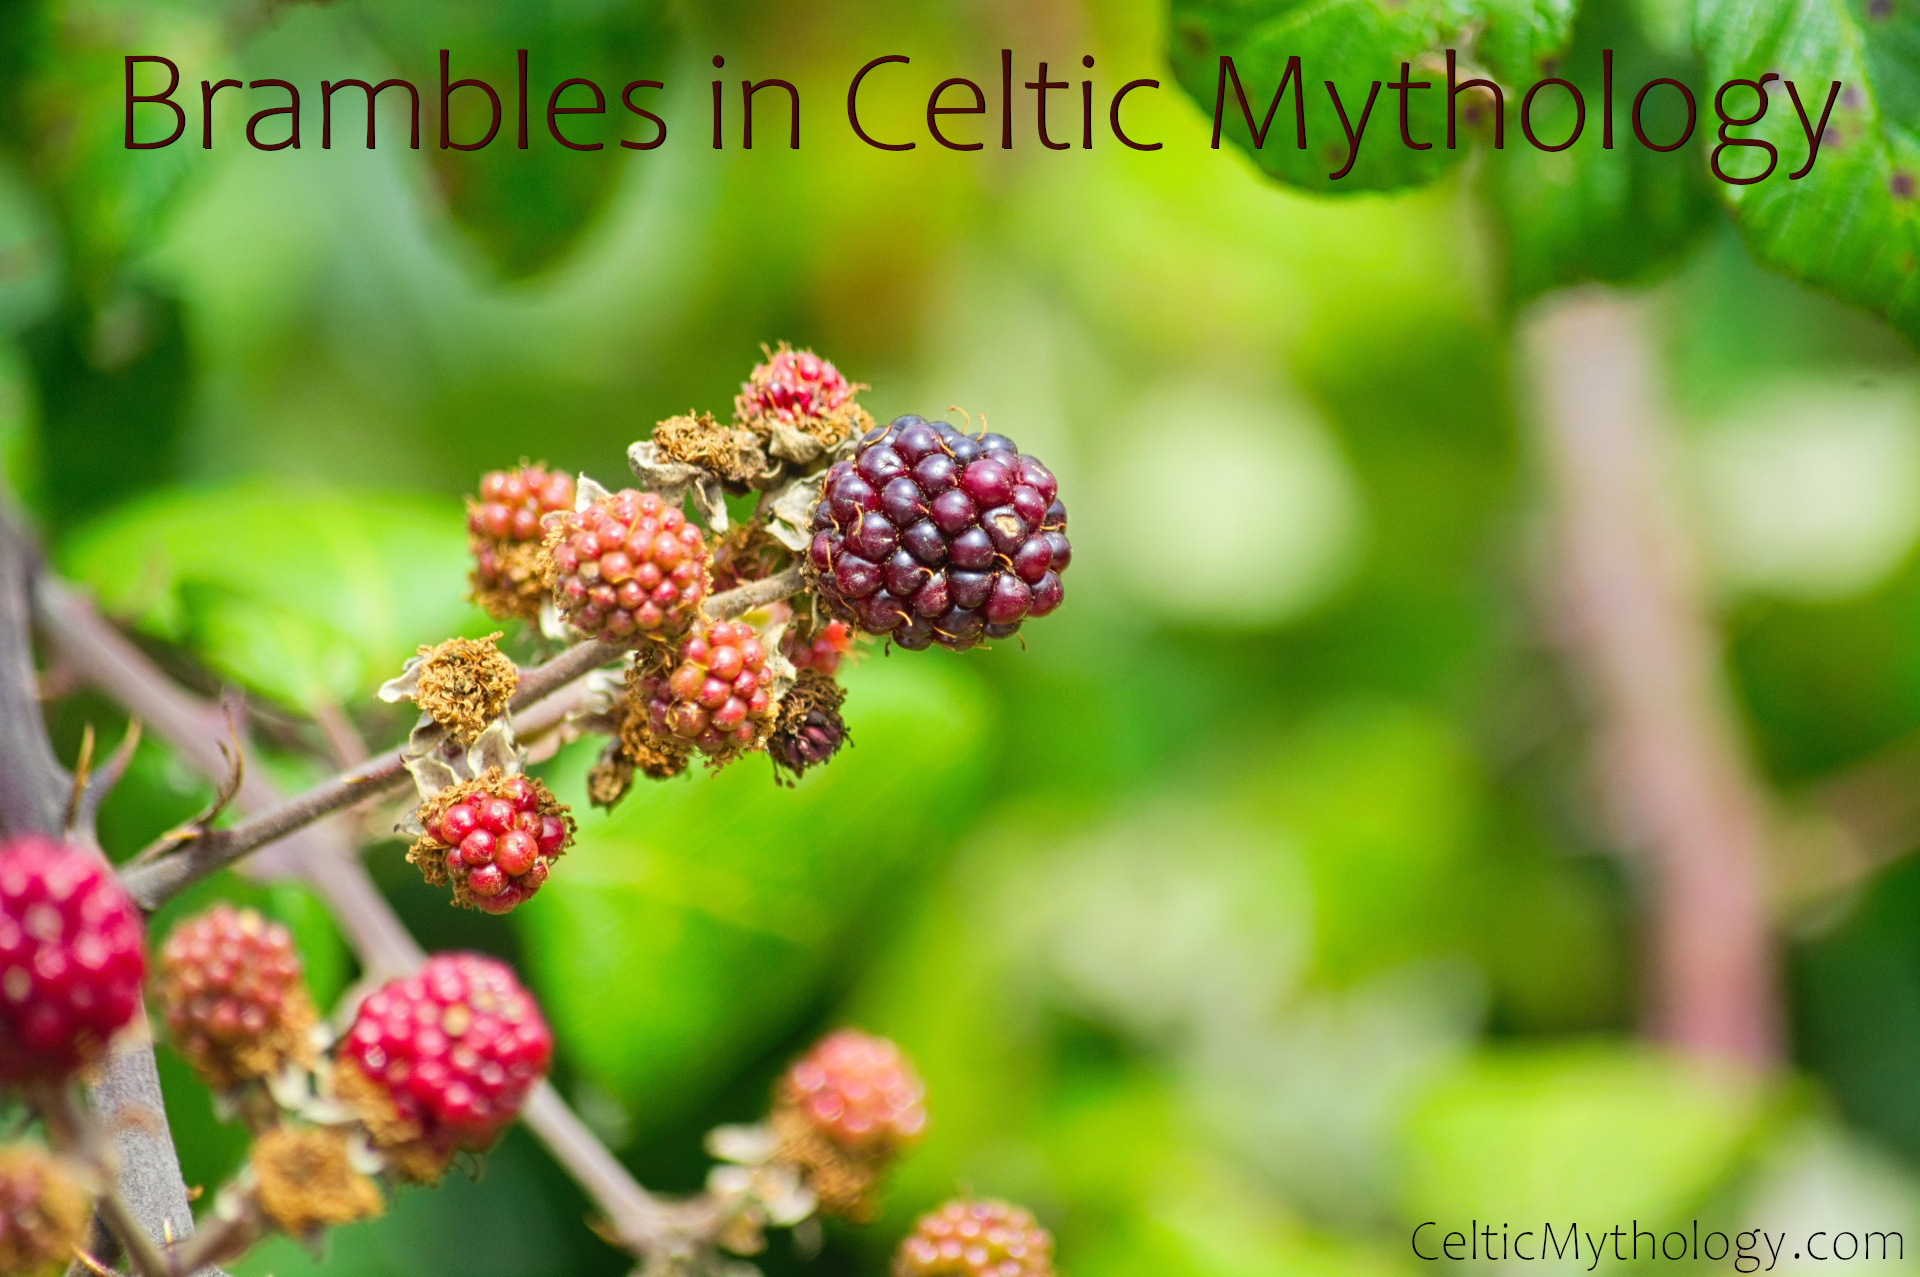 Brambles in Celtic Mythology